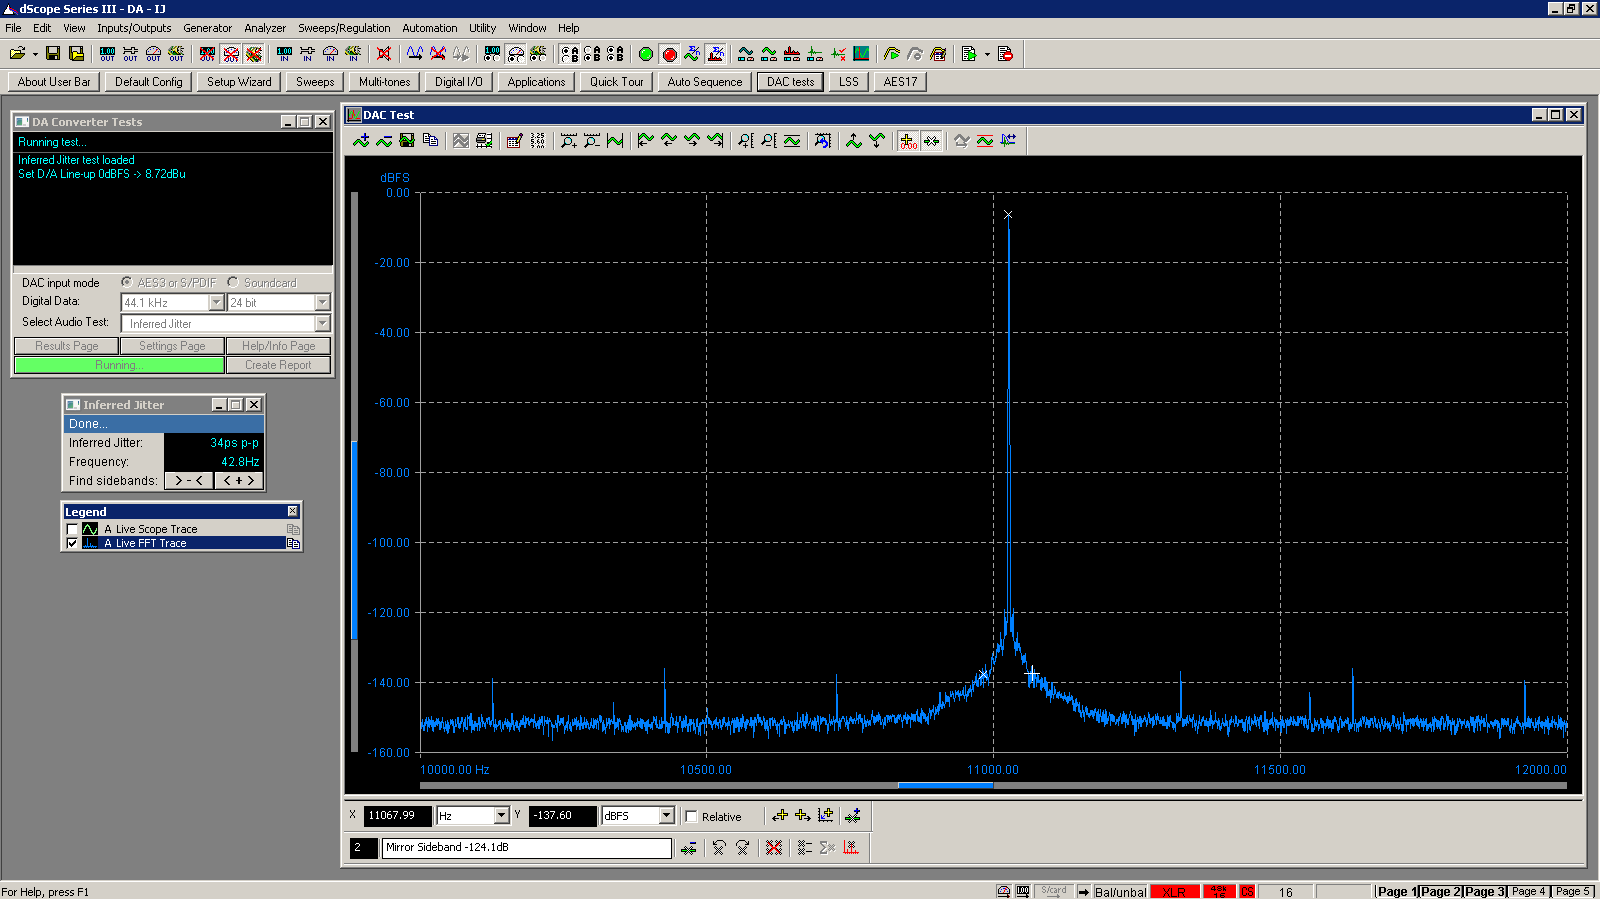 20151013 Bifrost MB inferred jitter - 2KHz BW - toslink.PNG